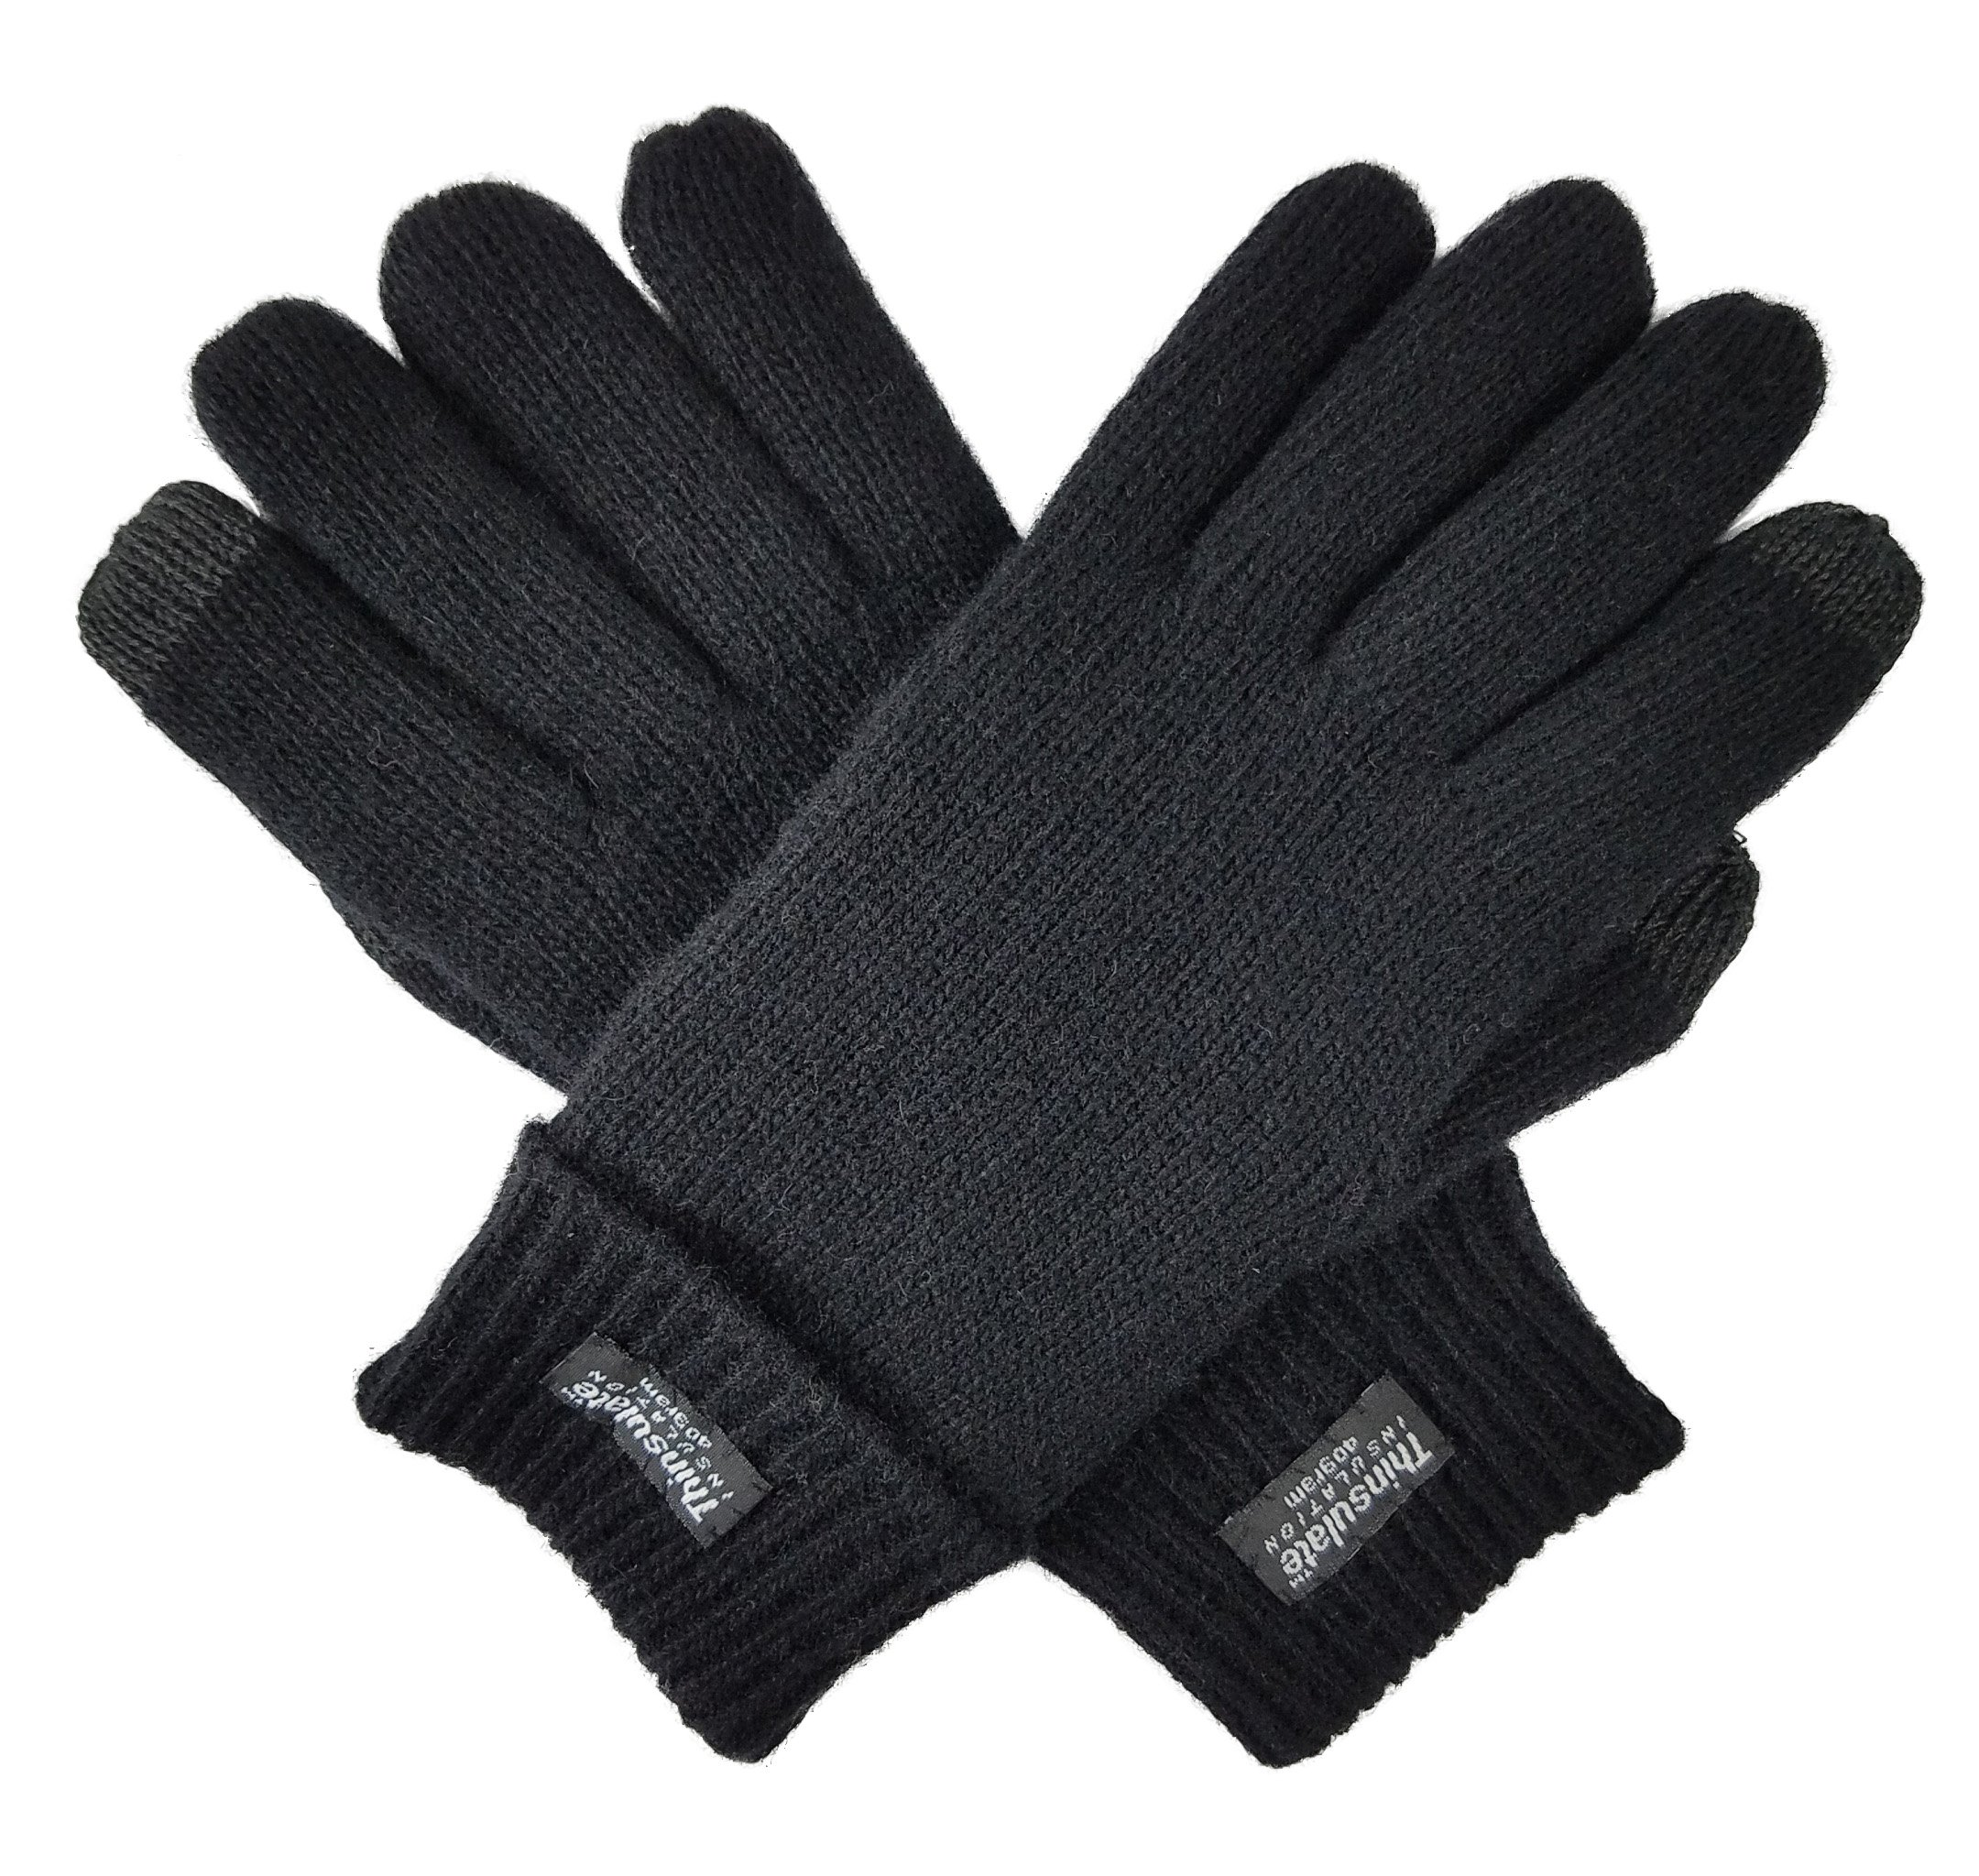 Bruceriver Ladie's Wool Knit Gloves with Thinsulate Lining Size S (Black Touchscreen)